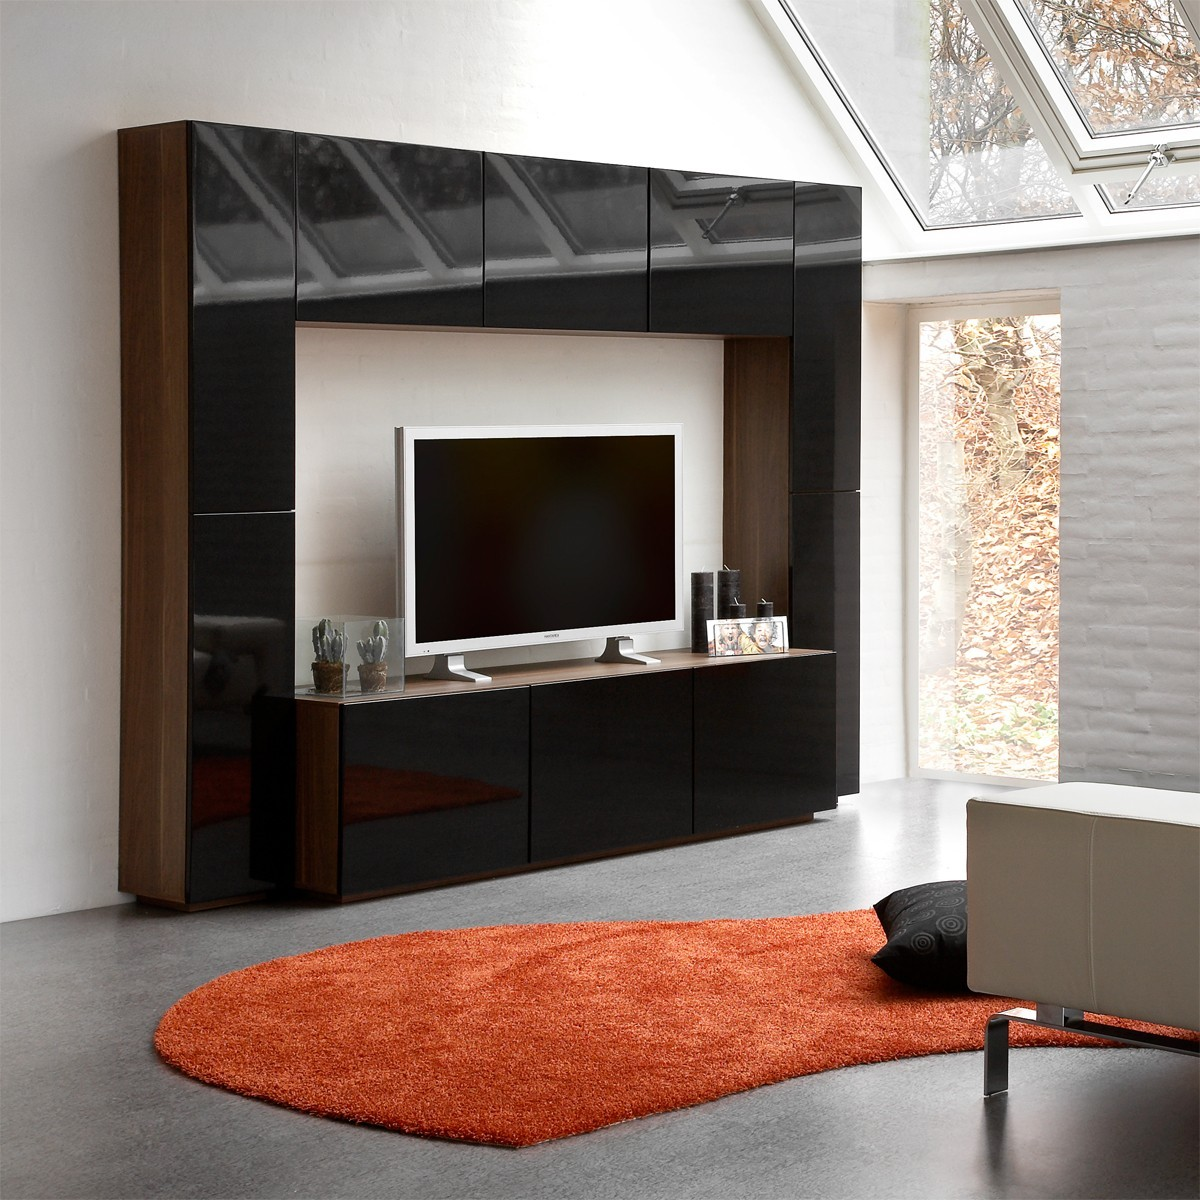 verblender wohnzimmer grau. Black Bedroom Furniture Sets. Home Design Ideas